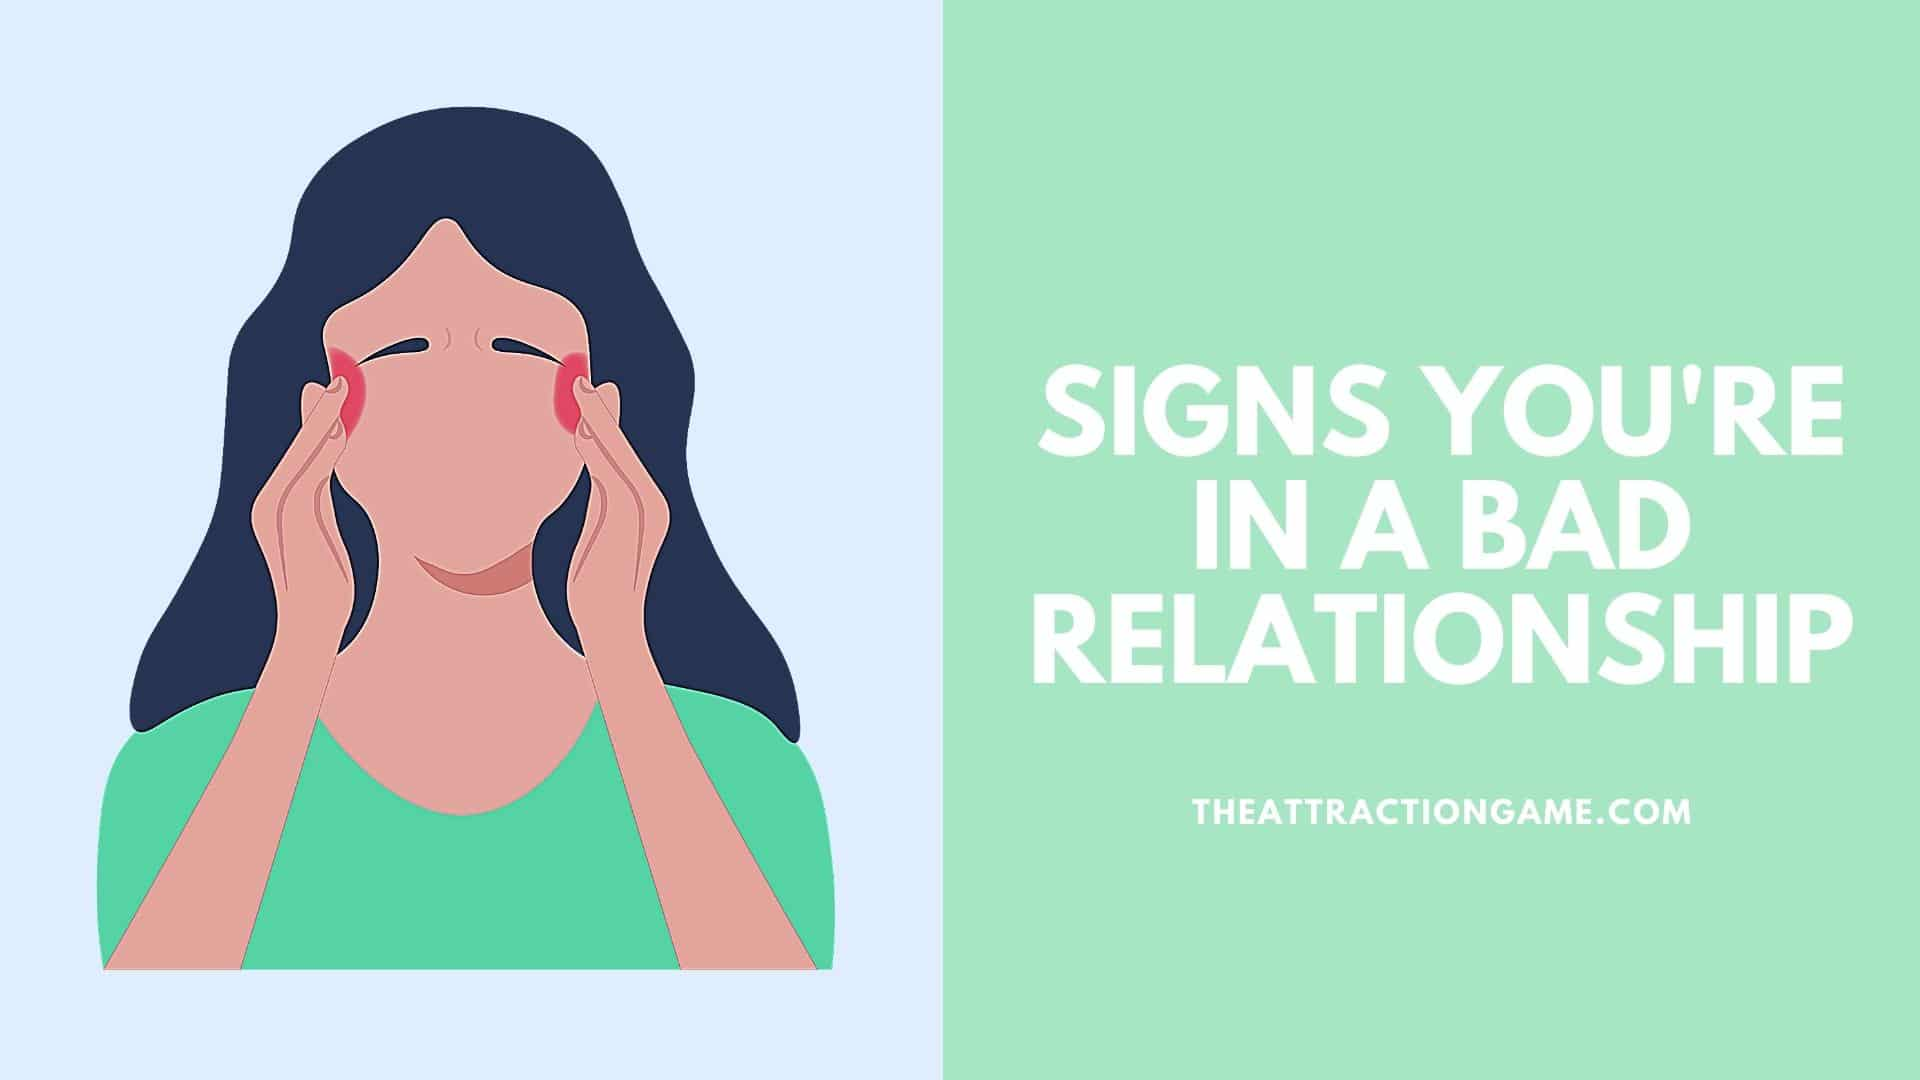 signs your relationship is bad, signs of an unhealthy relationship, bad relationship signs, signs your relationship is bad